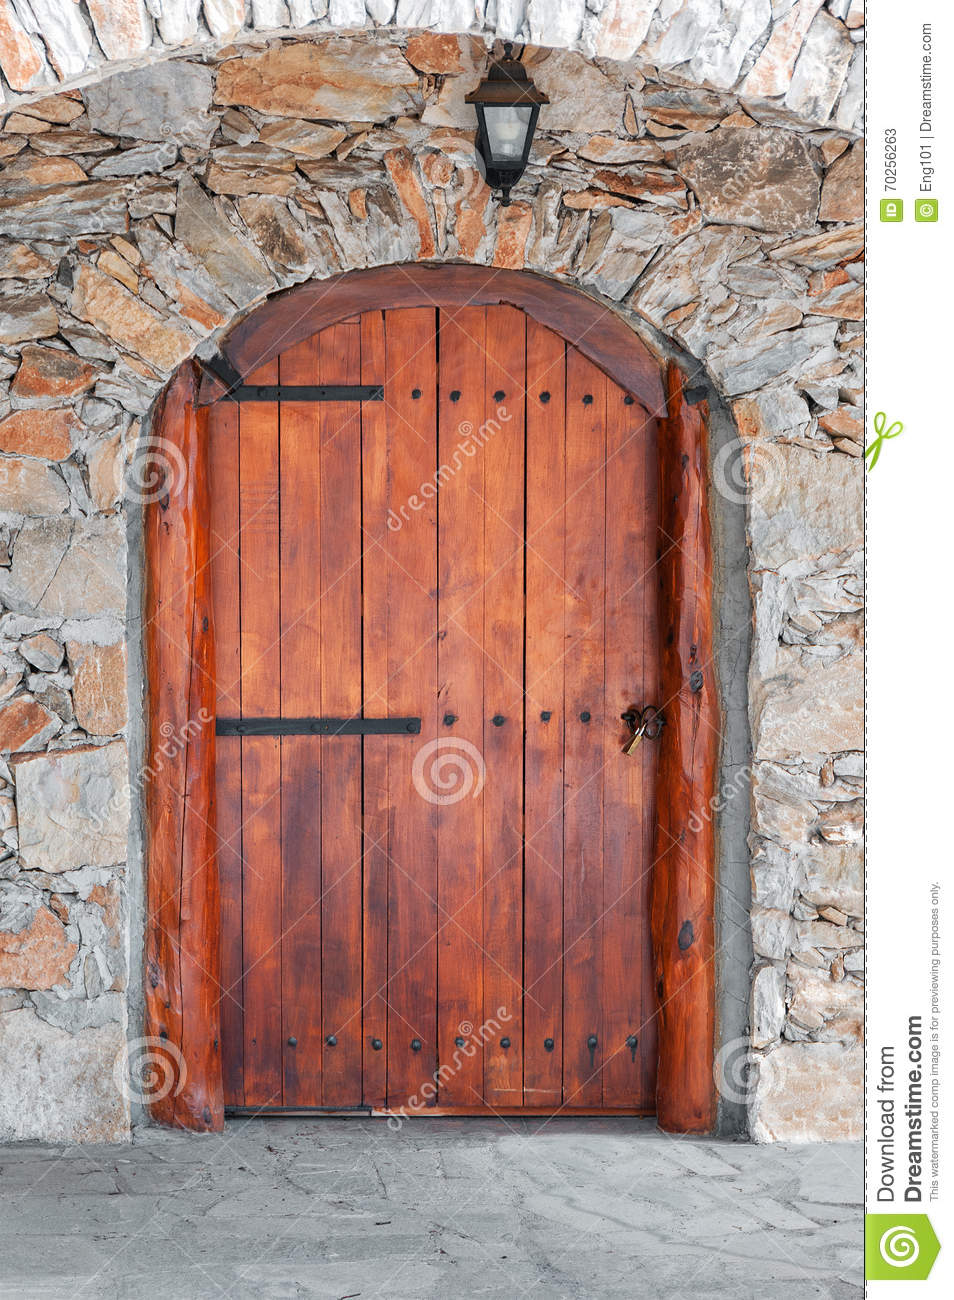 Arched wooden door in a stone wall stock photo image for Door of stone